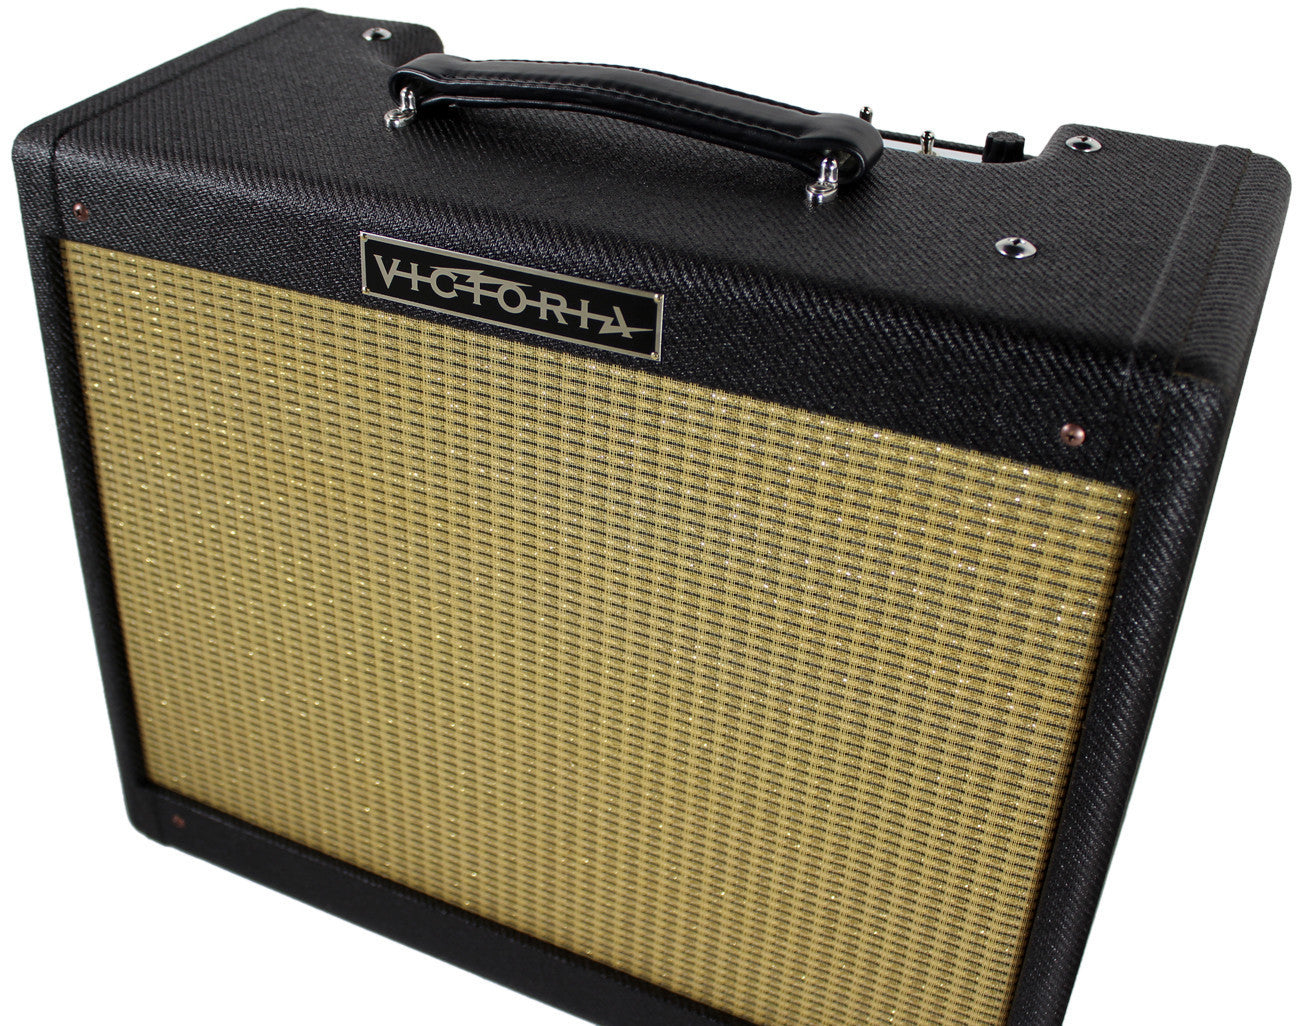 Fender Tweed Amp >> Victoria Amps 20112 Amplifier Black Tweed